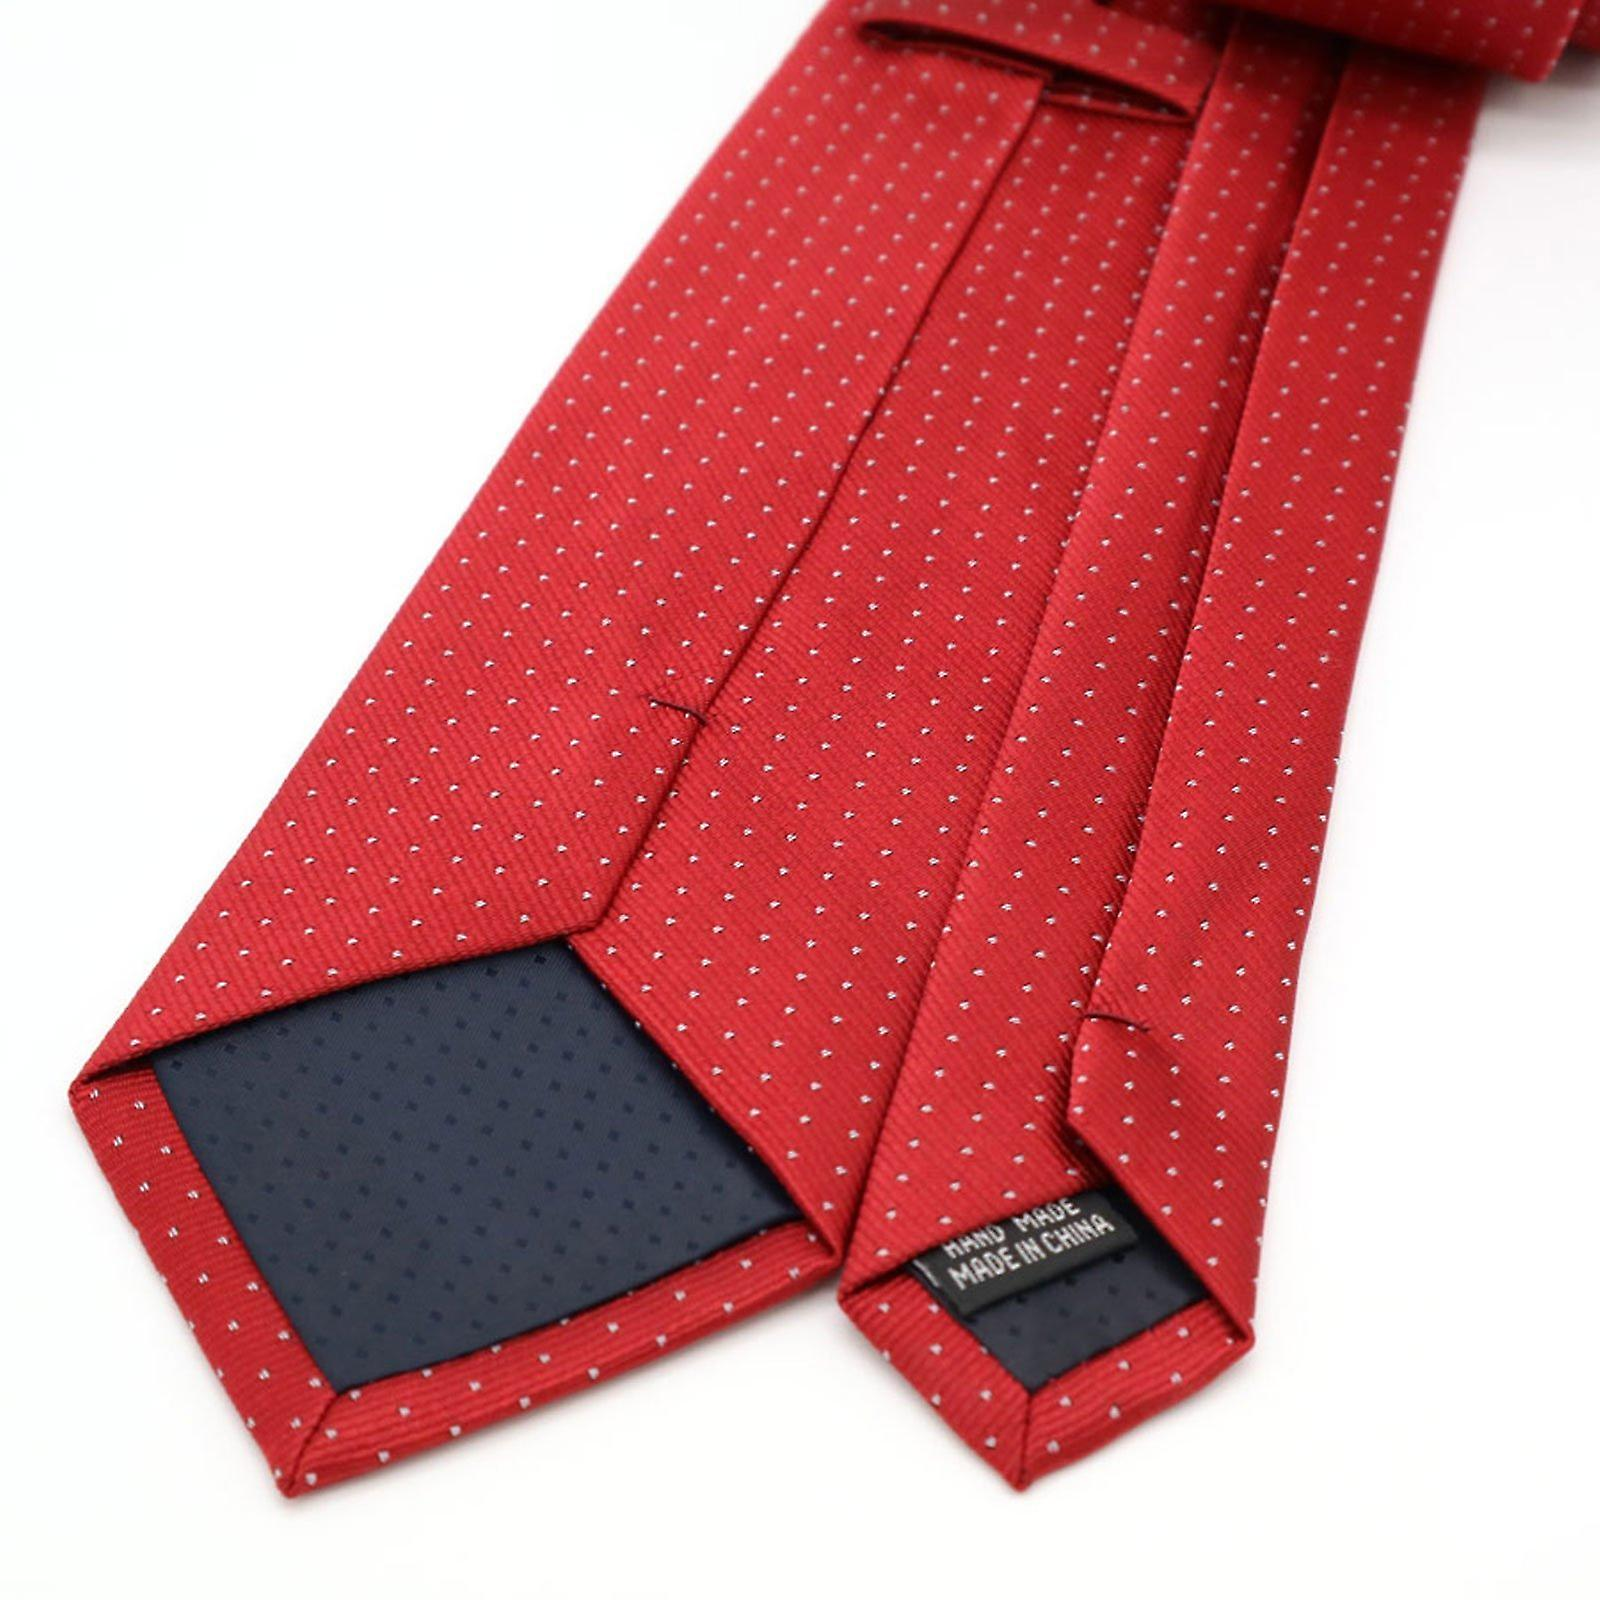 Strawberry red patterned tie & pocket square hanky set